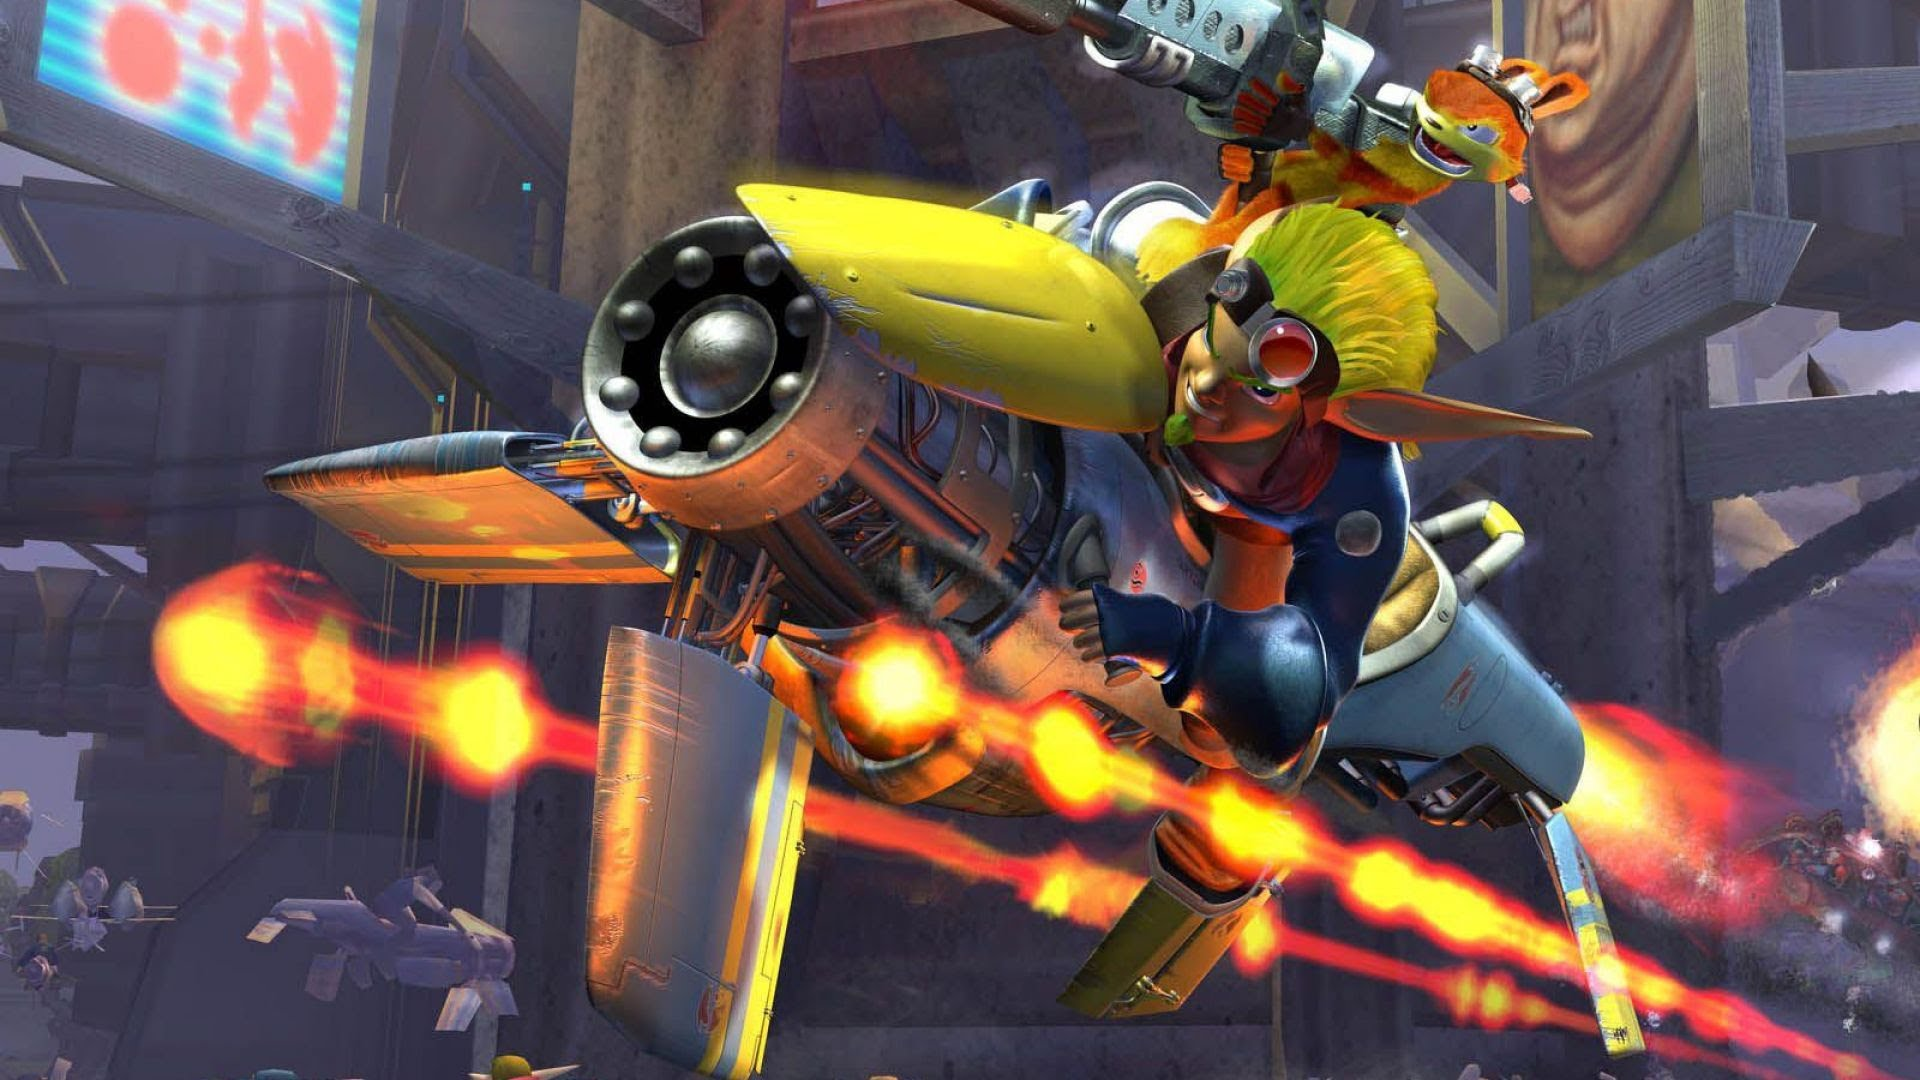 jak 2 ps4 remaster release date